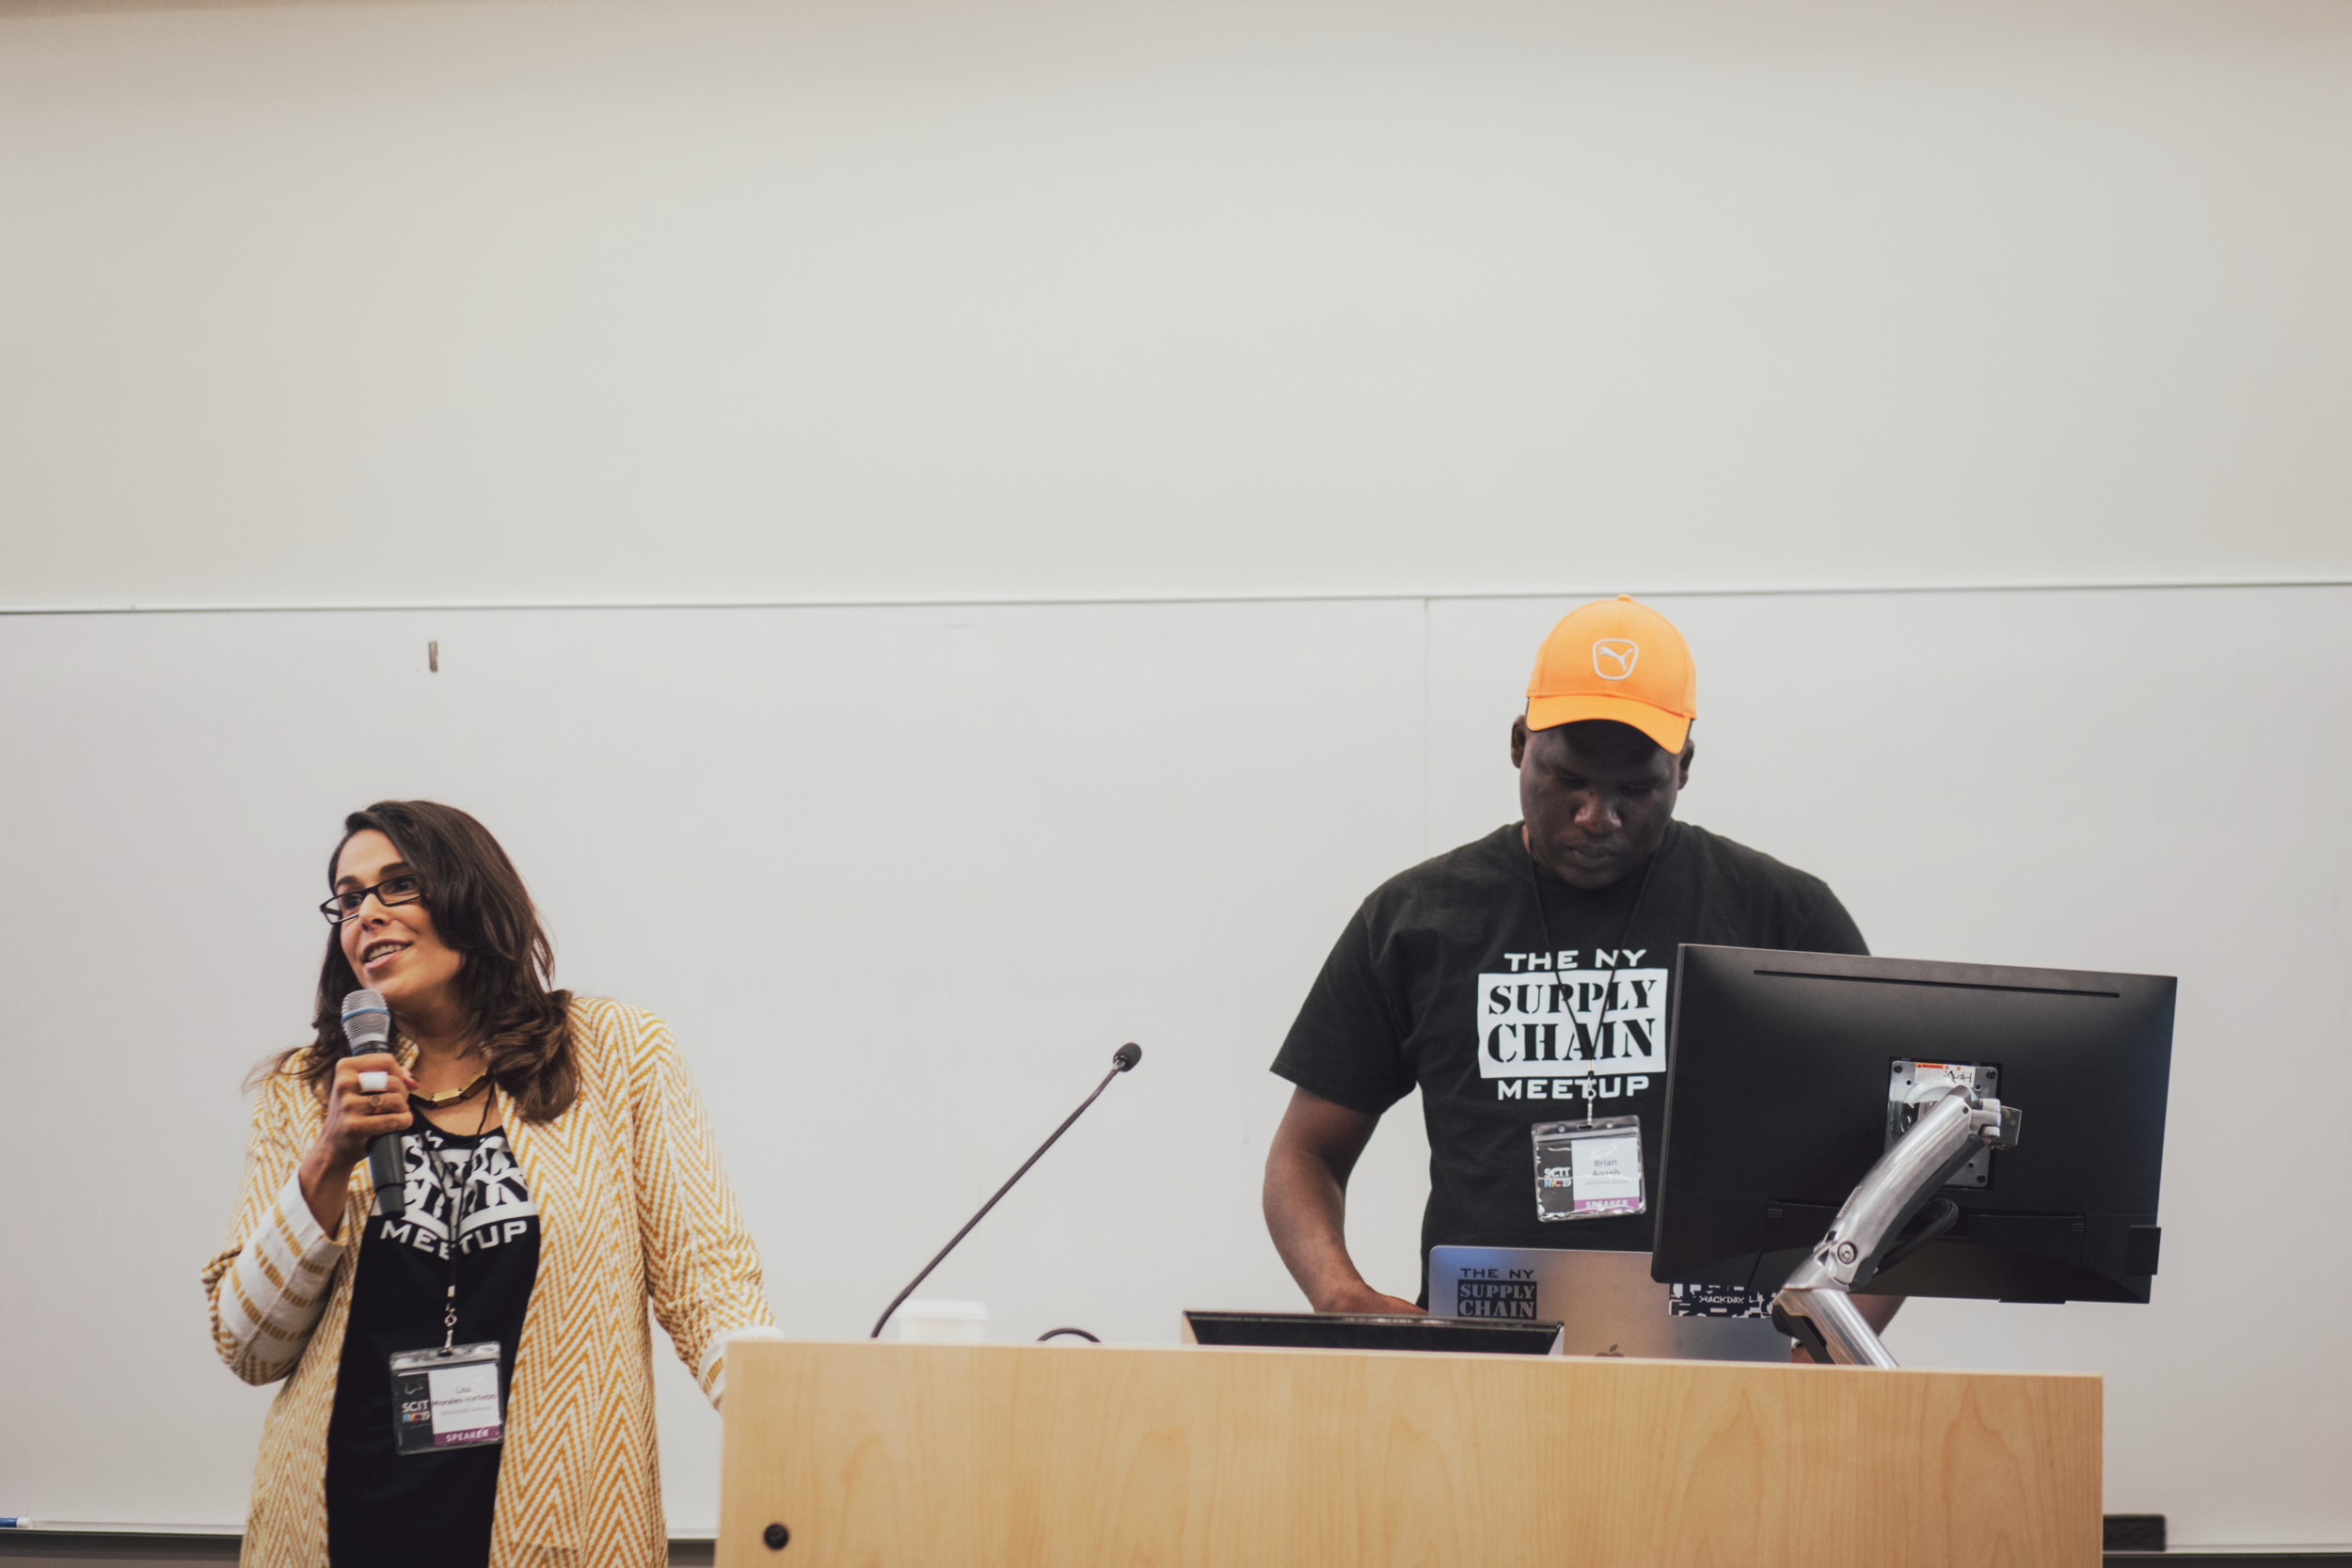 Lisa Morales-Hellebo, and Brian Laung Aoaeh. Kicking off #SCIT2019, June 19, 2019 in NYC. Photo Credit: Ray Neutron.